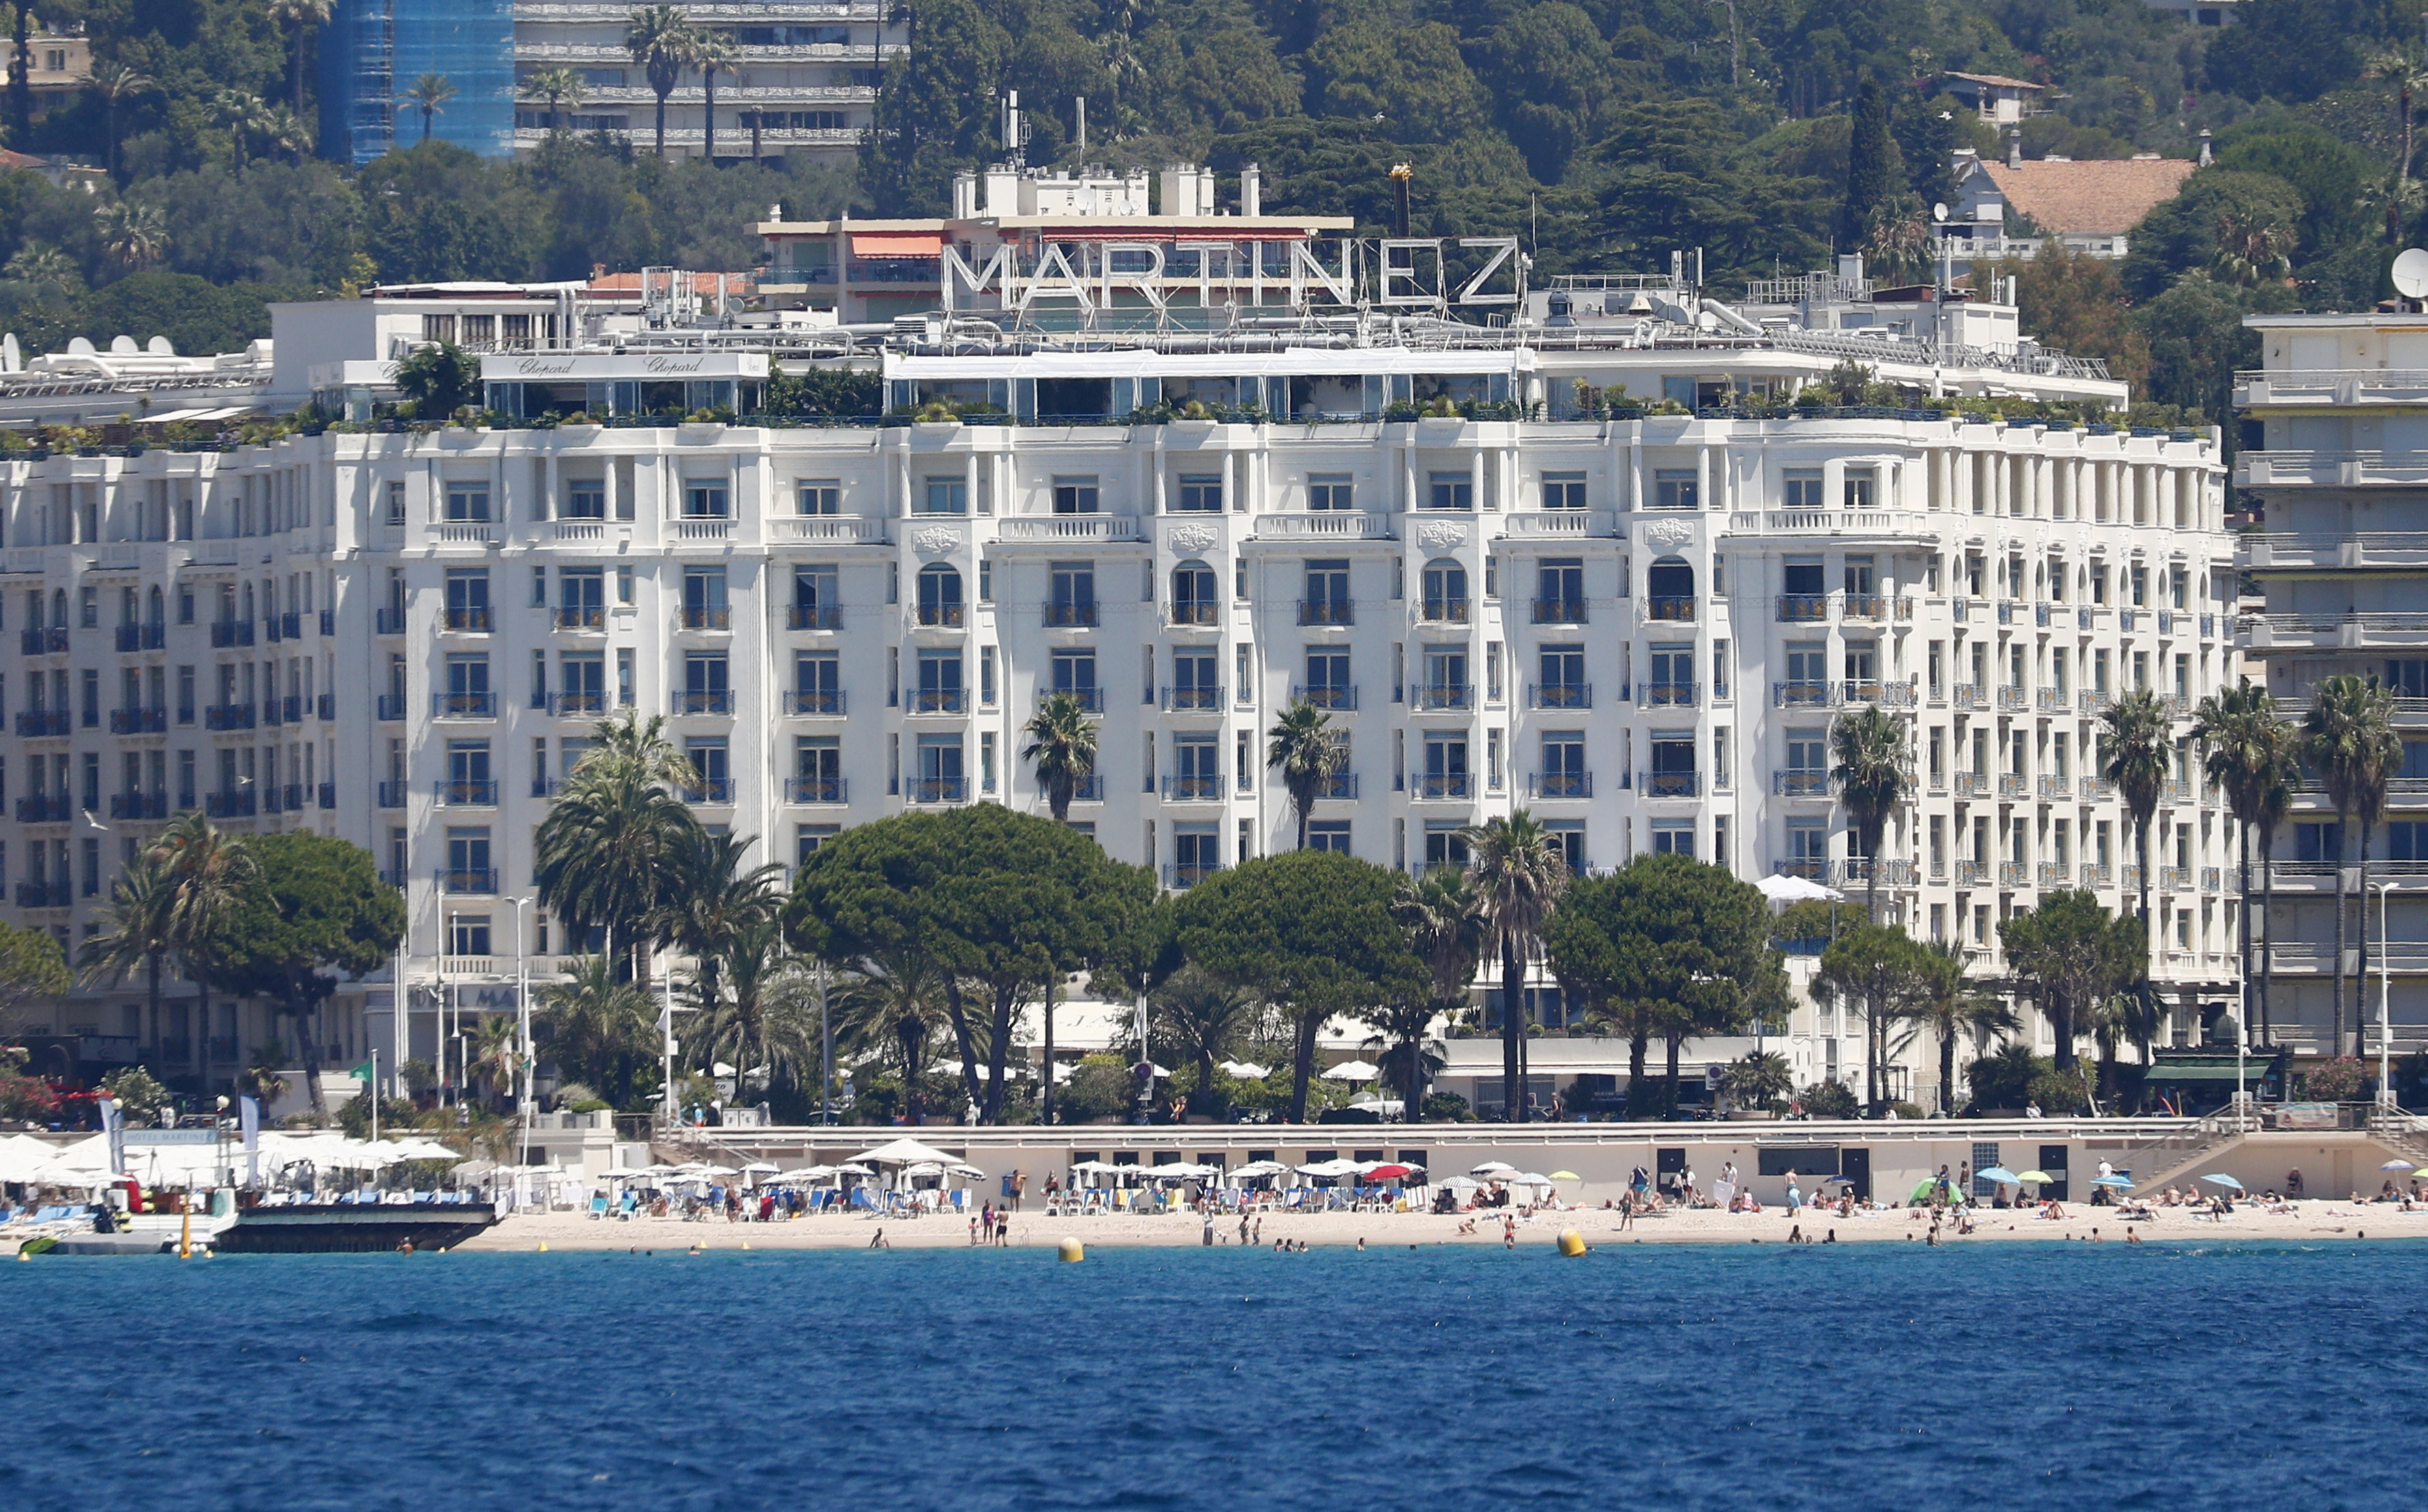 The 74th Cannes Film Festival - The Croisette - Cannes, France, July 5, 2021. A general view shows the Croisette with beaches and the Hotel Martinez before the start of the Cannes Film Festival.